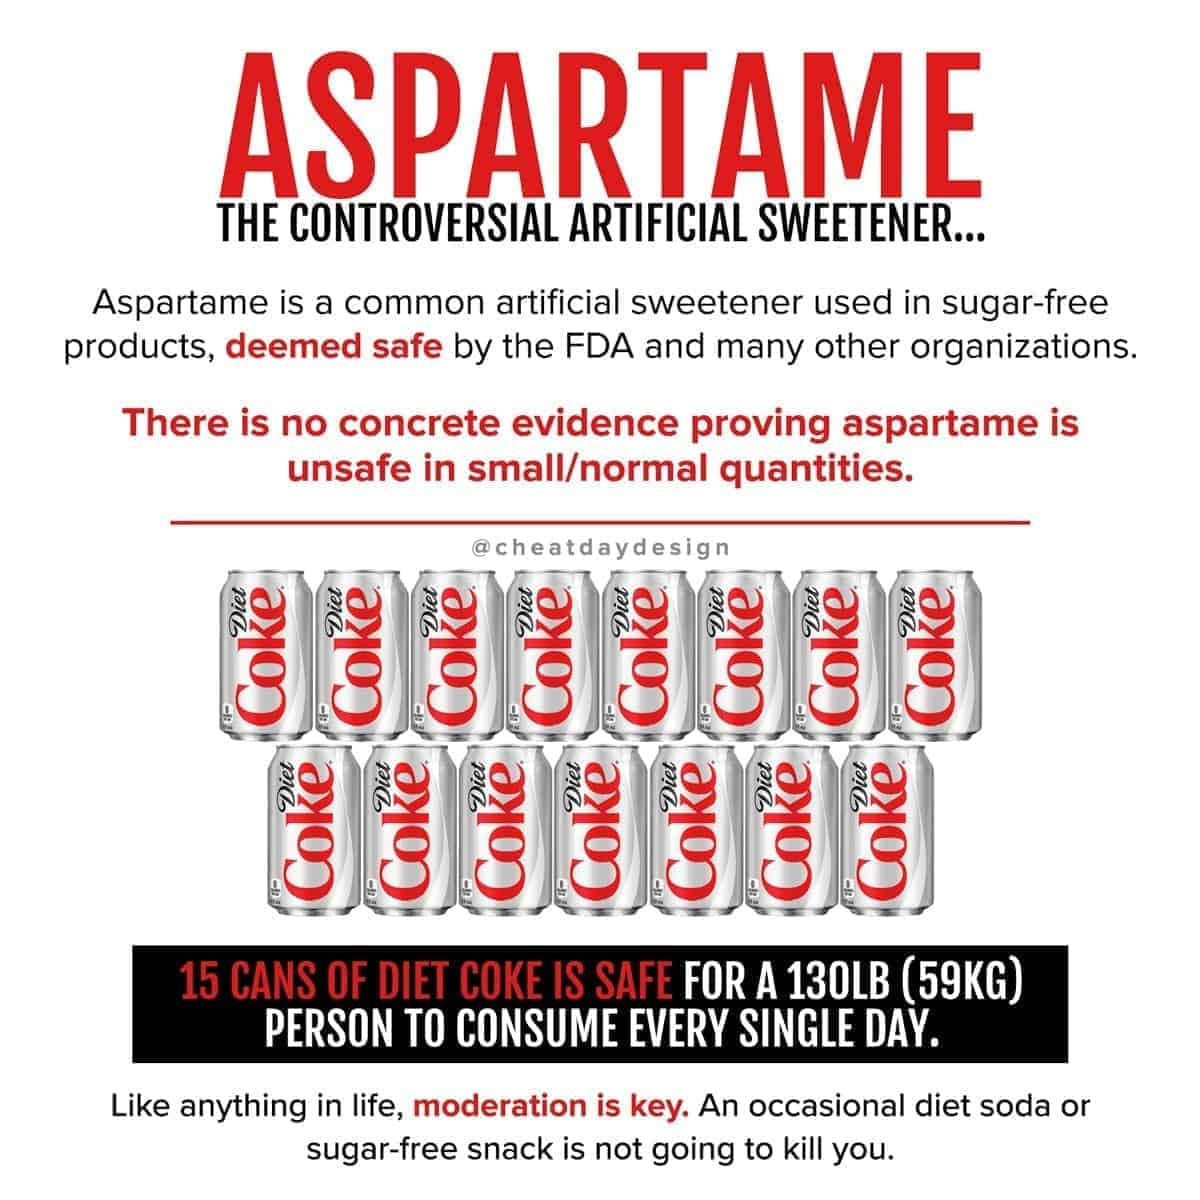 Is Aspartame Dangerous?